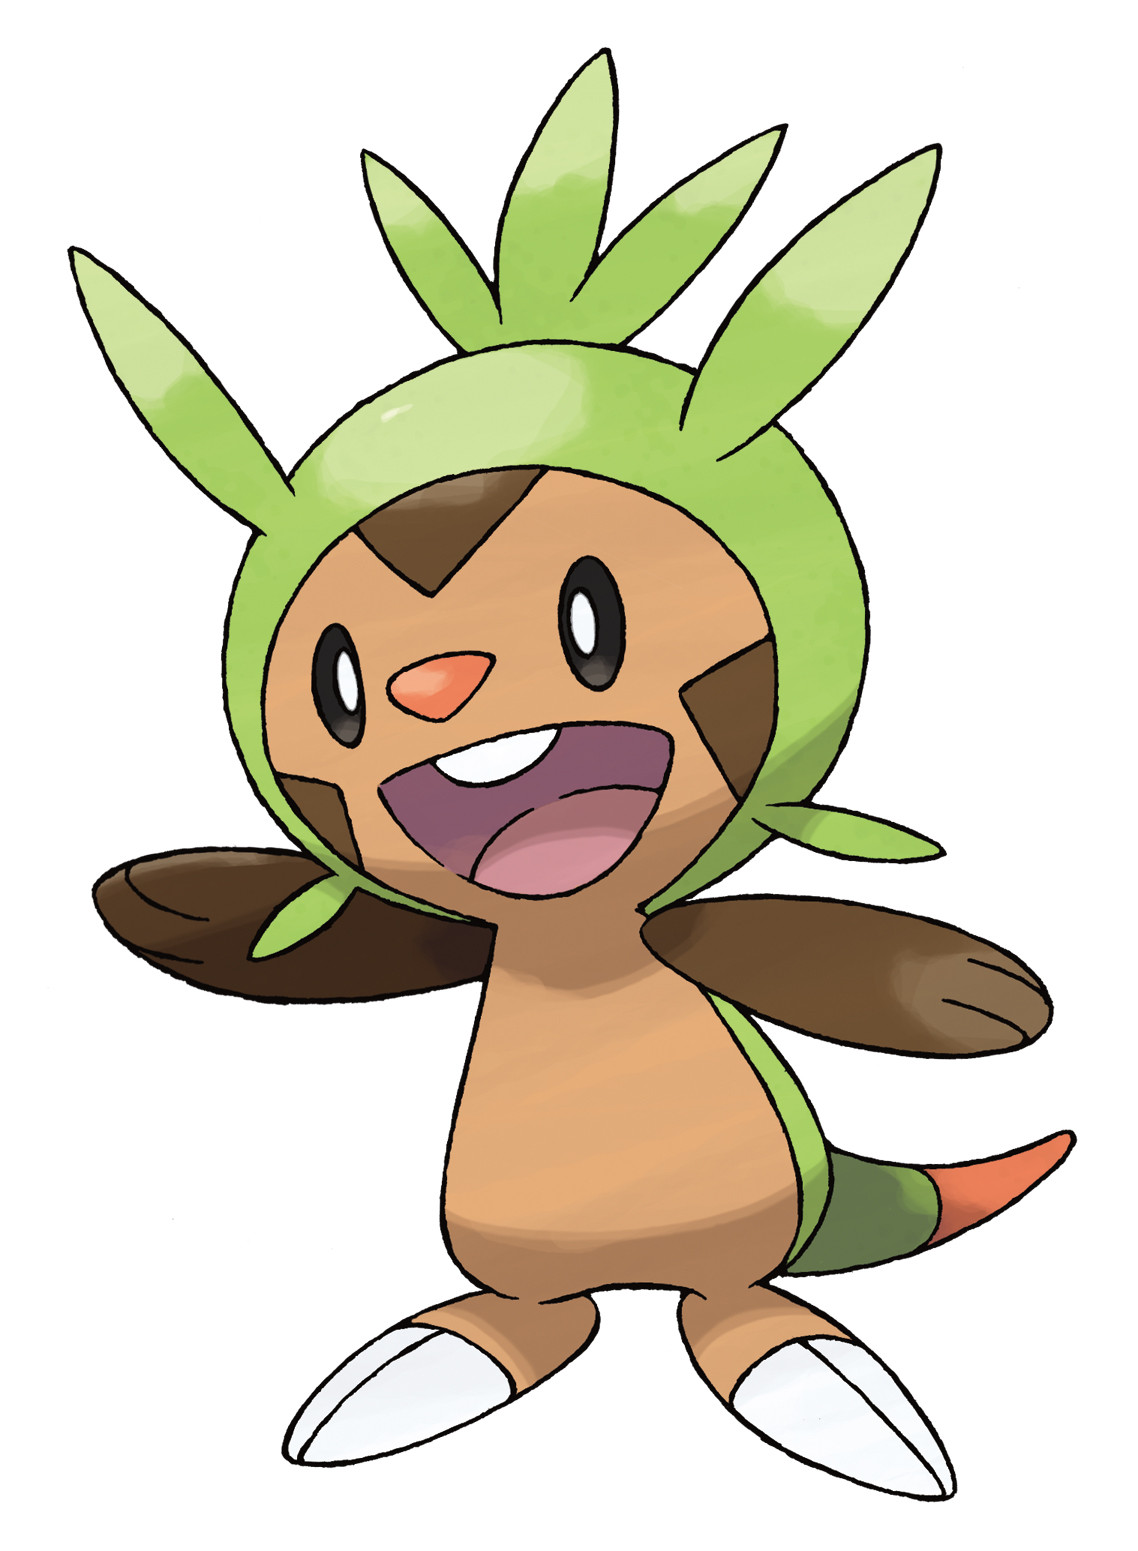 Pokemon X and Y Chespin Artwork